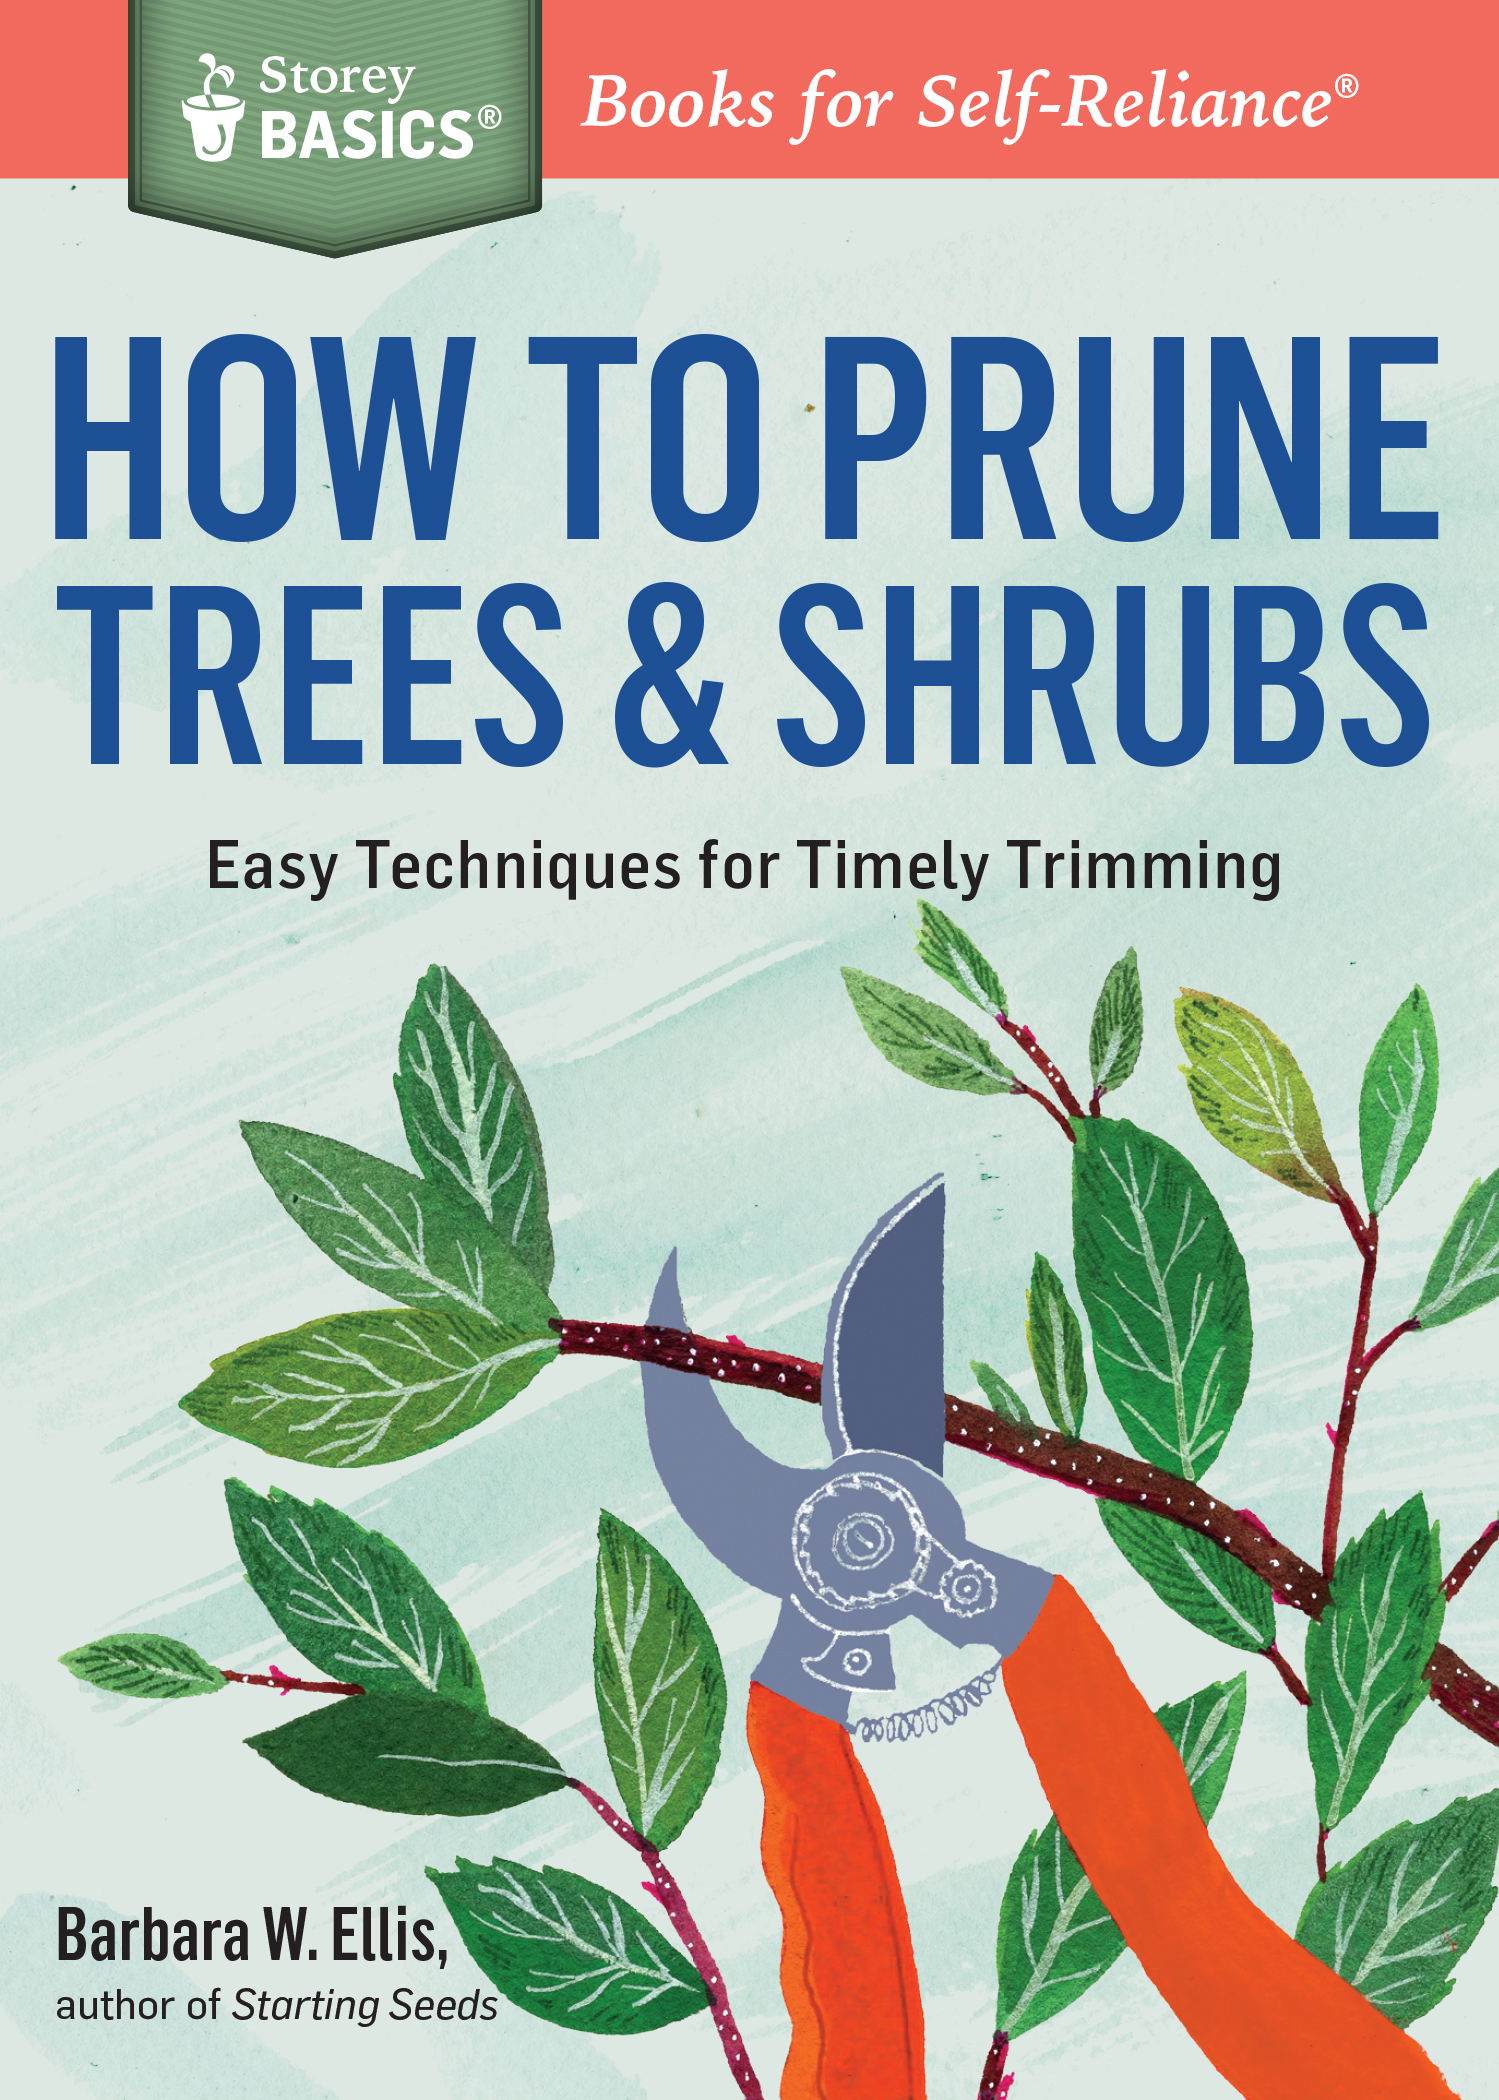 How to Prune Trees & Shrubs Easy Techniques for Timely Trimming. A Storey BASICS® Title - Barbara W. Ellis